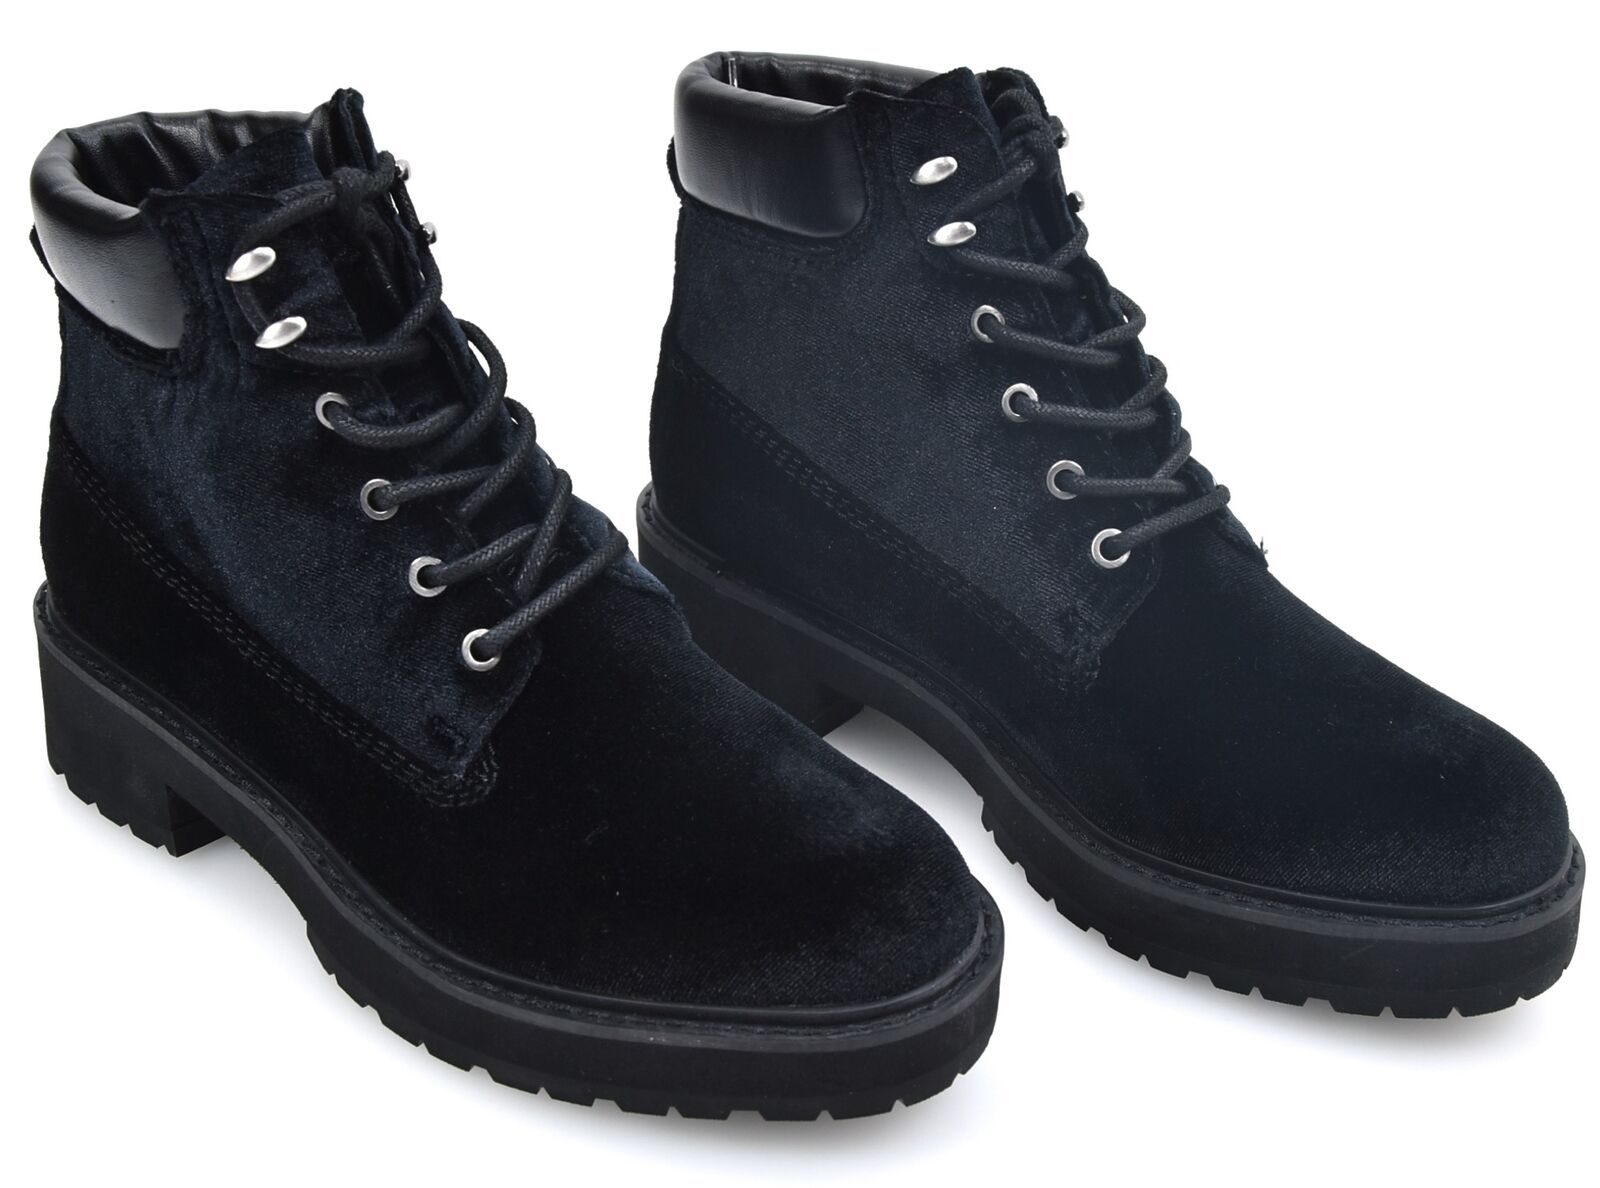 Windsorsmith Womens Boots Ankle Boots Winter Casual Velvet Type. Comet